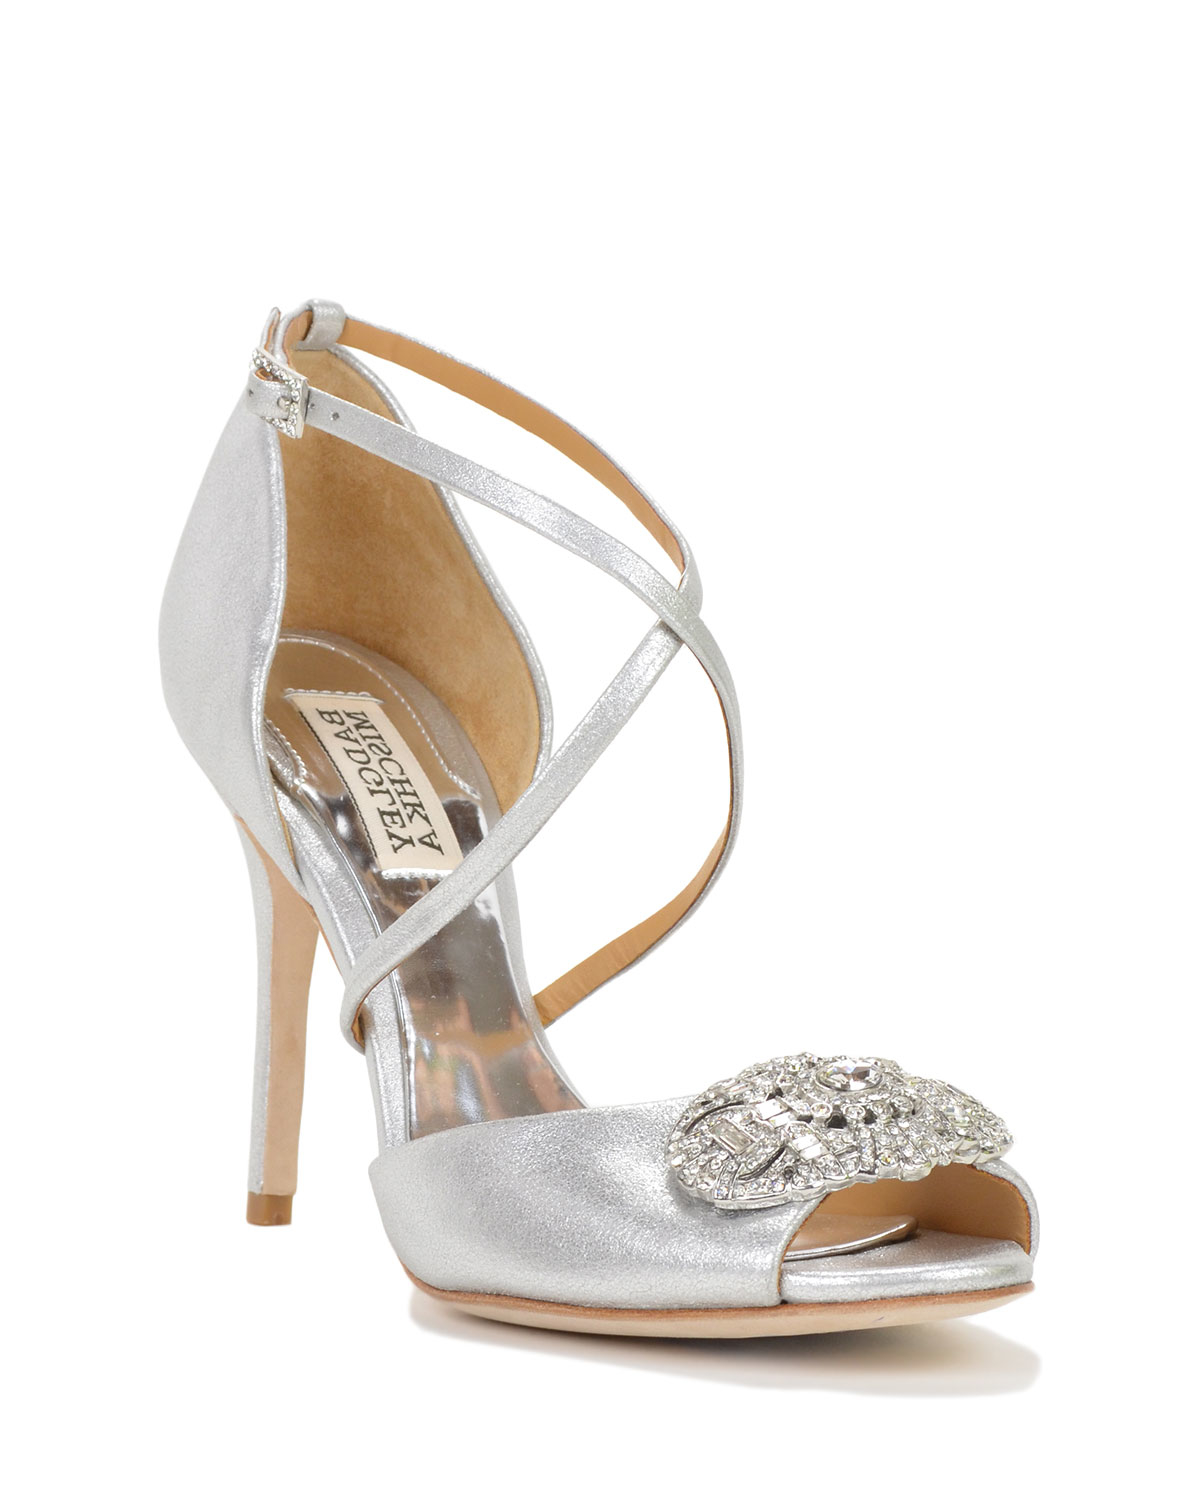 Badgley mischka Sari ii Metallic Strappy Evening Shoe in Metallic